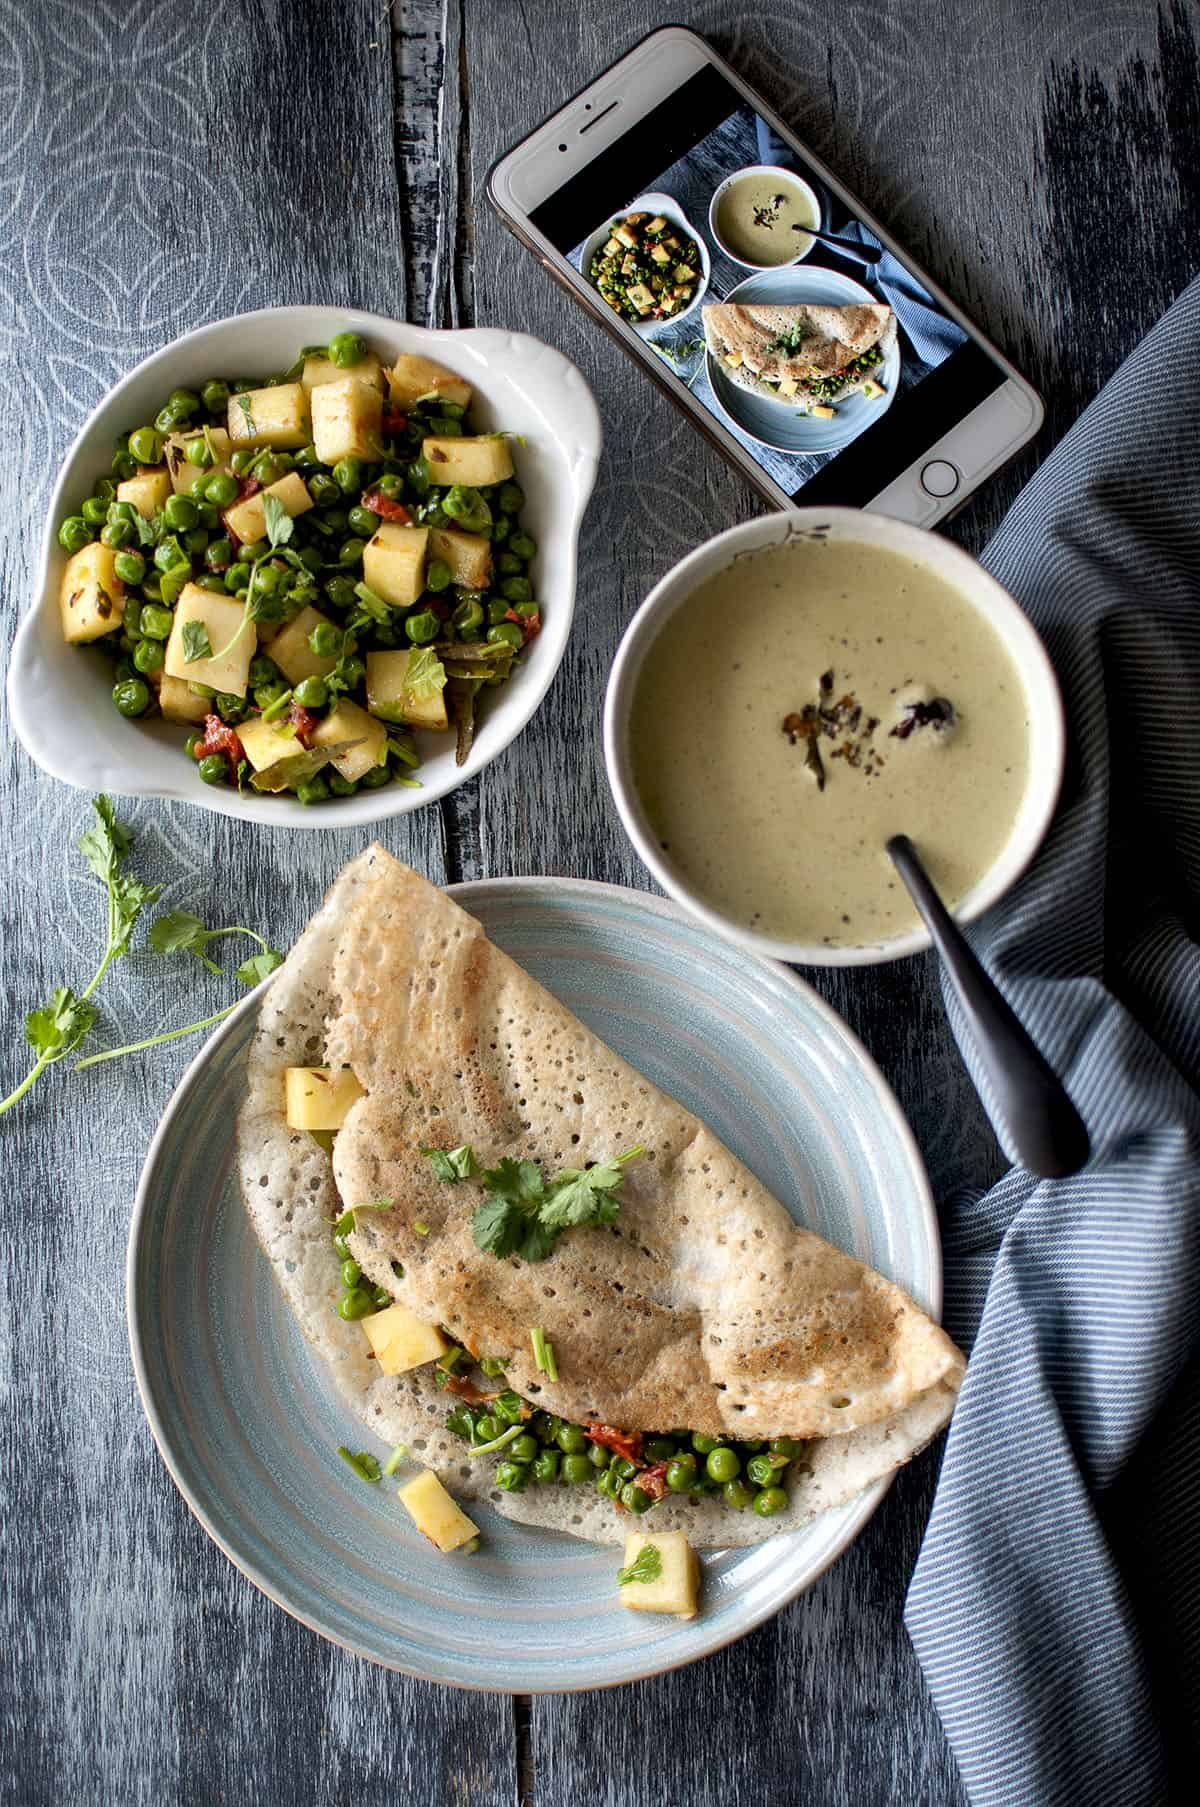 Blue plate with folded Indian crepe with paneer cubes and green peas